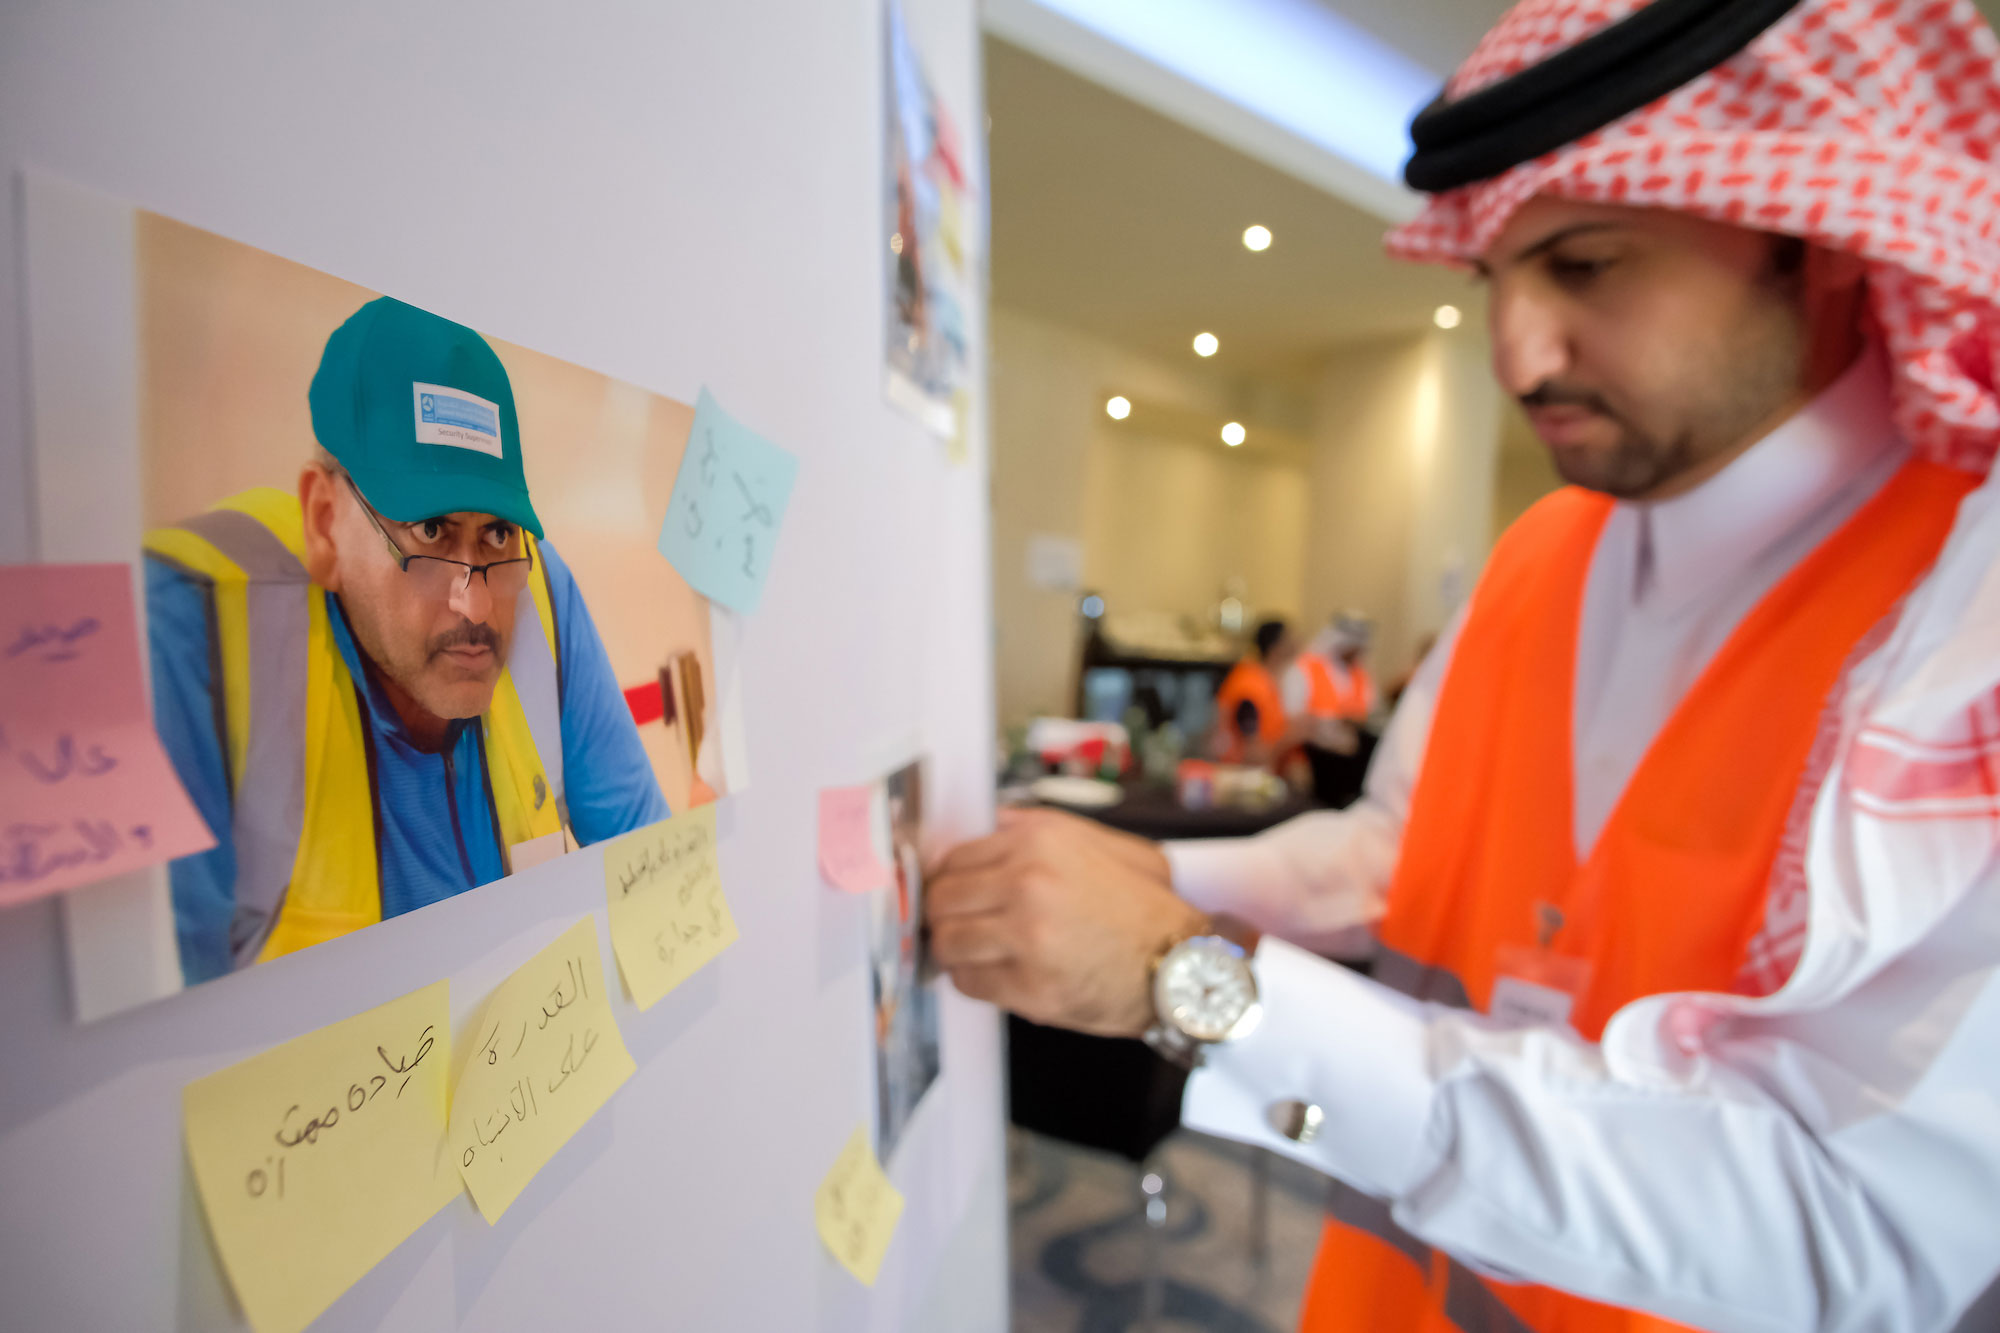 Qatari man brainstorming ideas in a leadership workshop